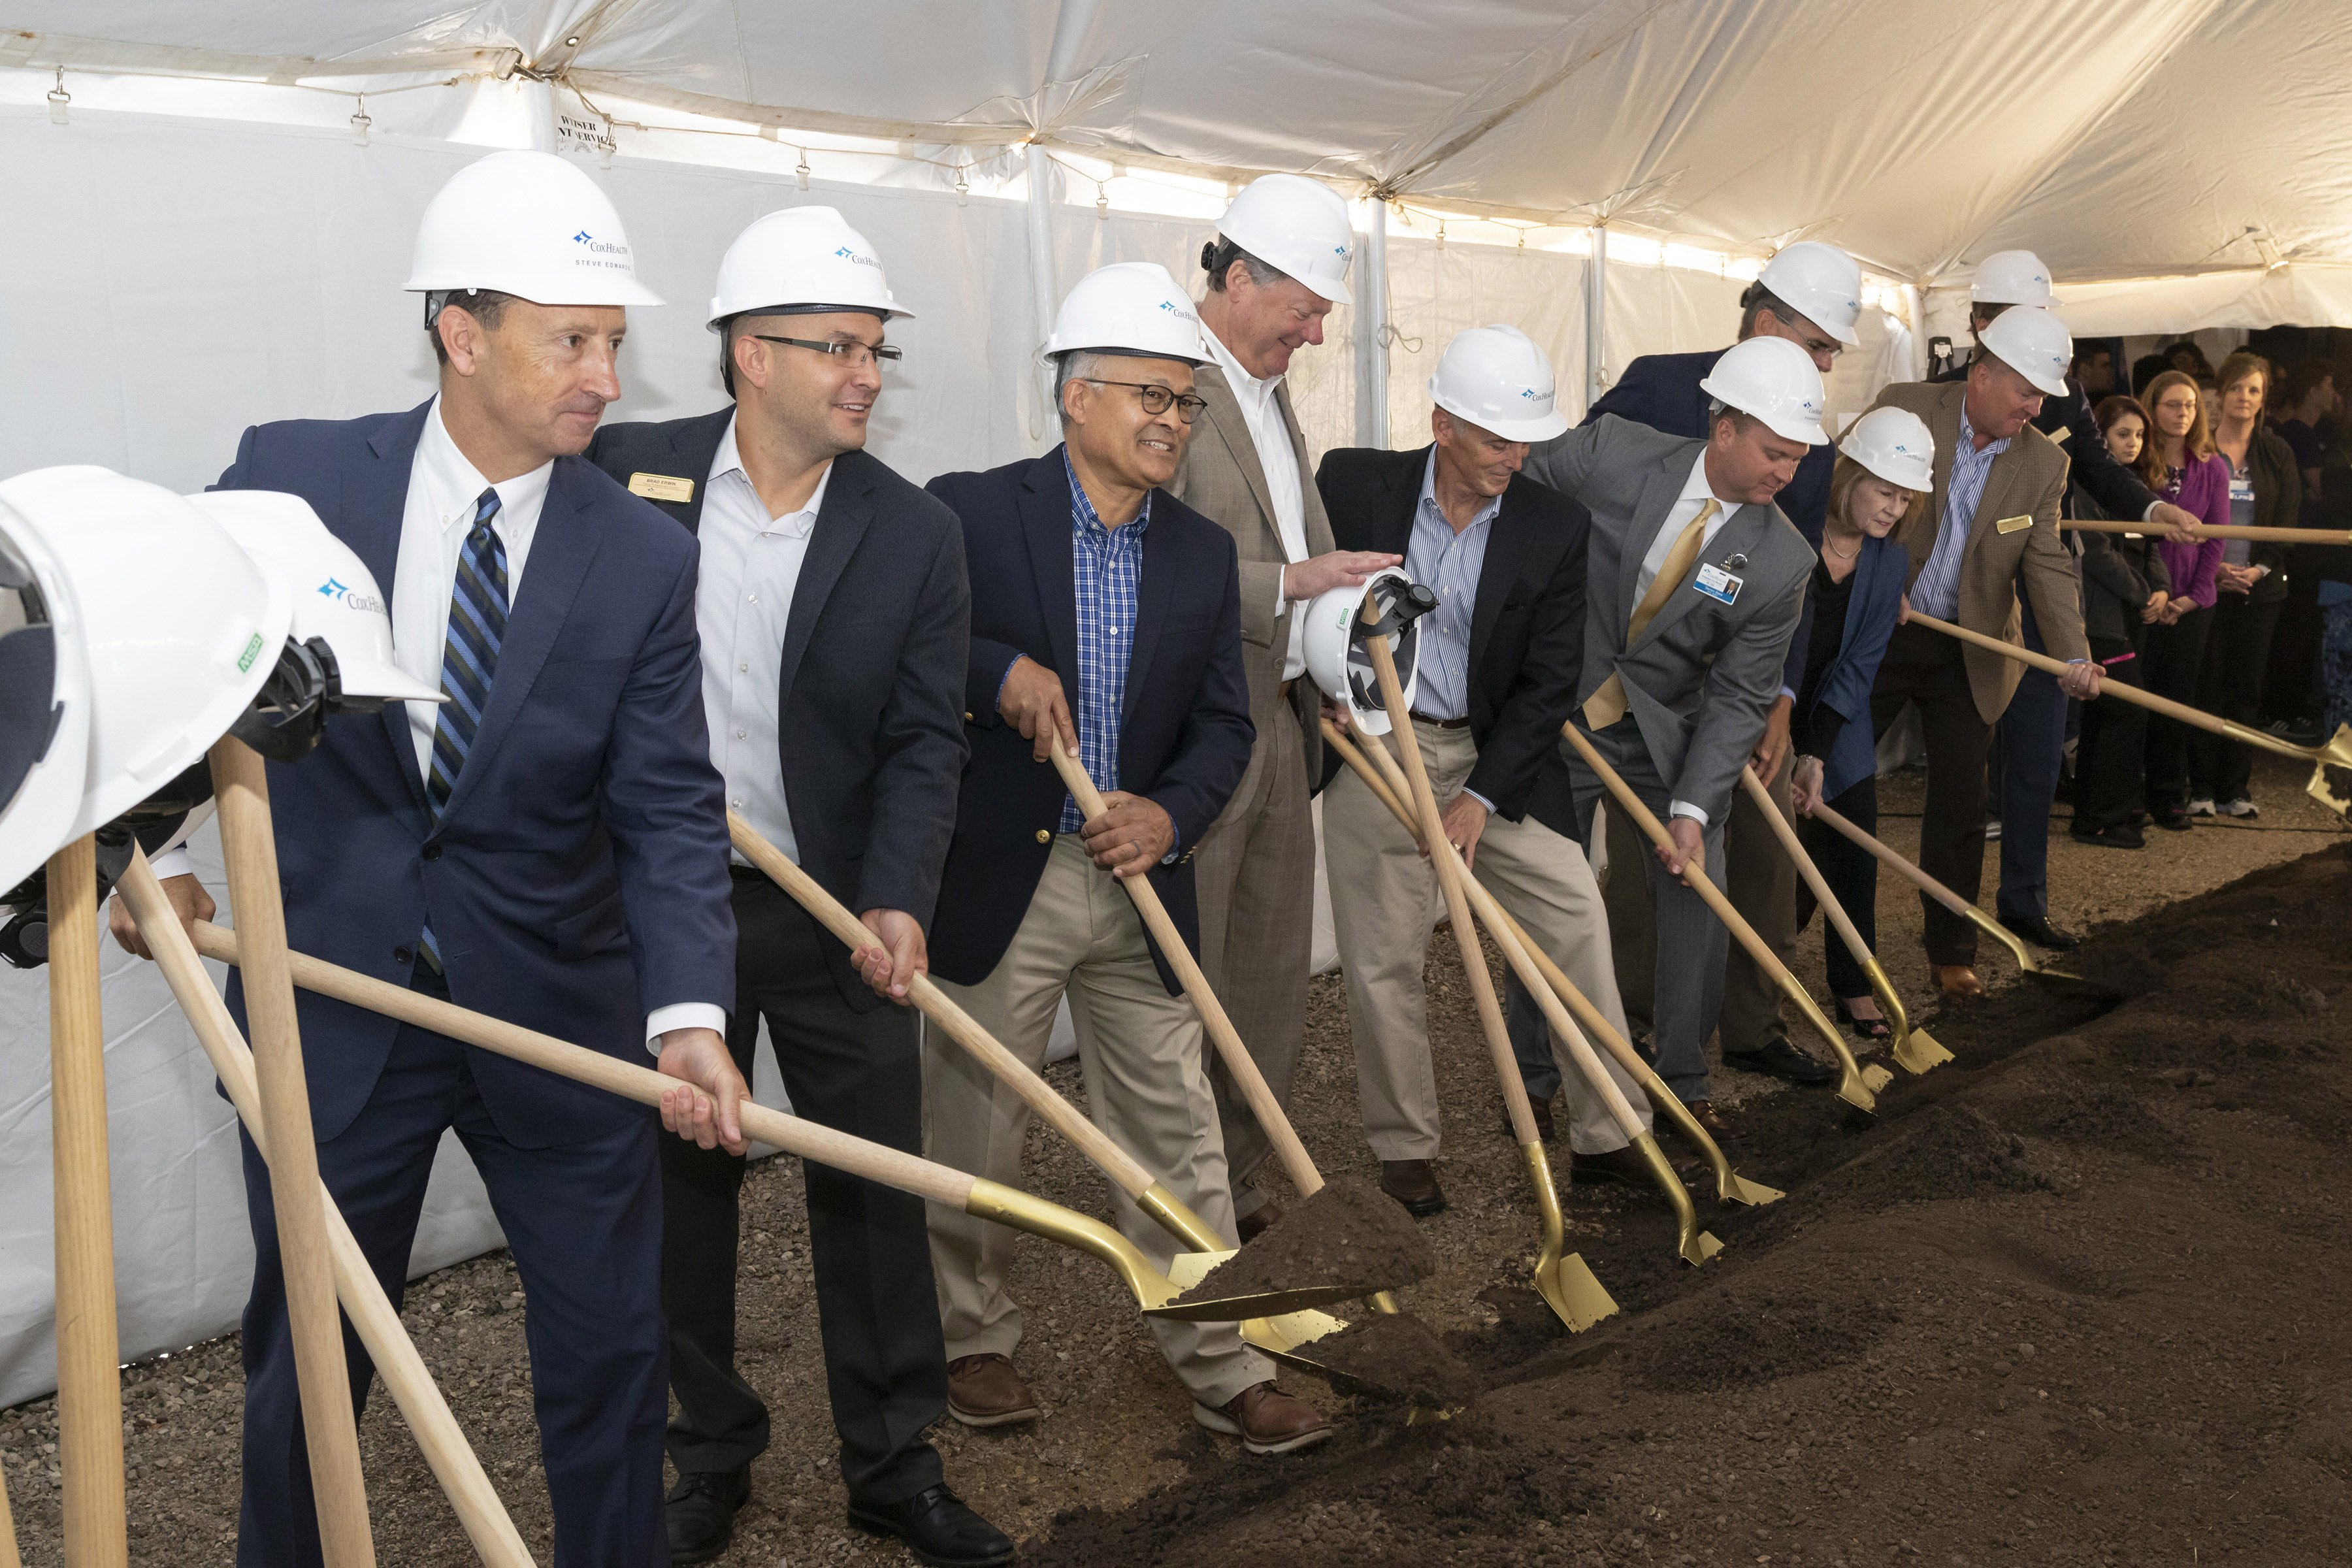 Members of the CoxHealth Board of Directors broke ground on the new Cox Monett Hospital.